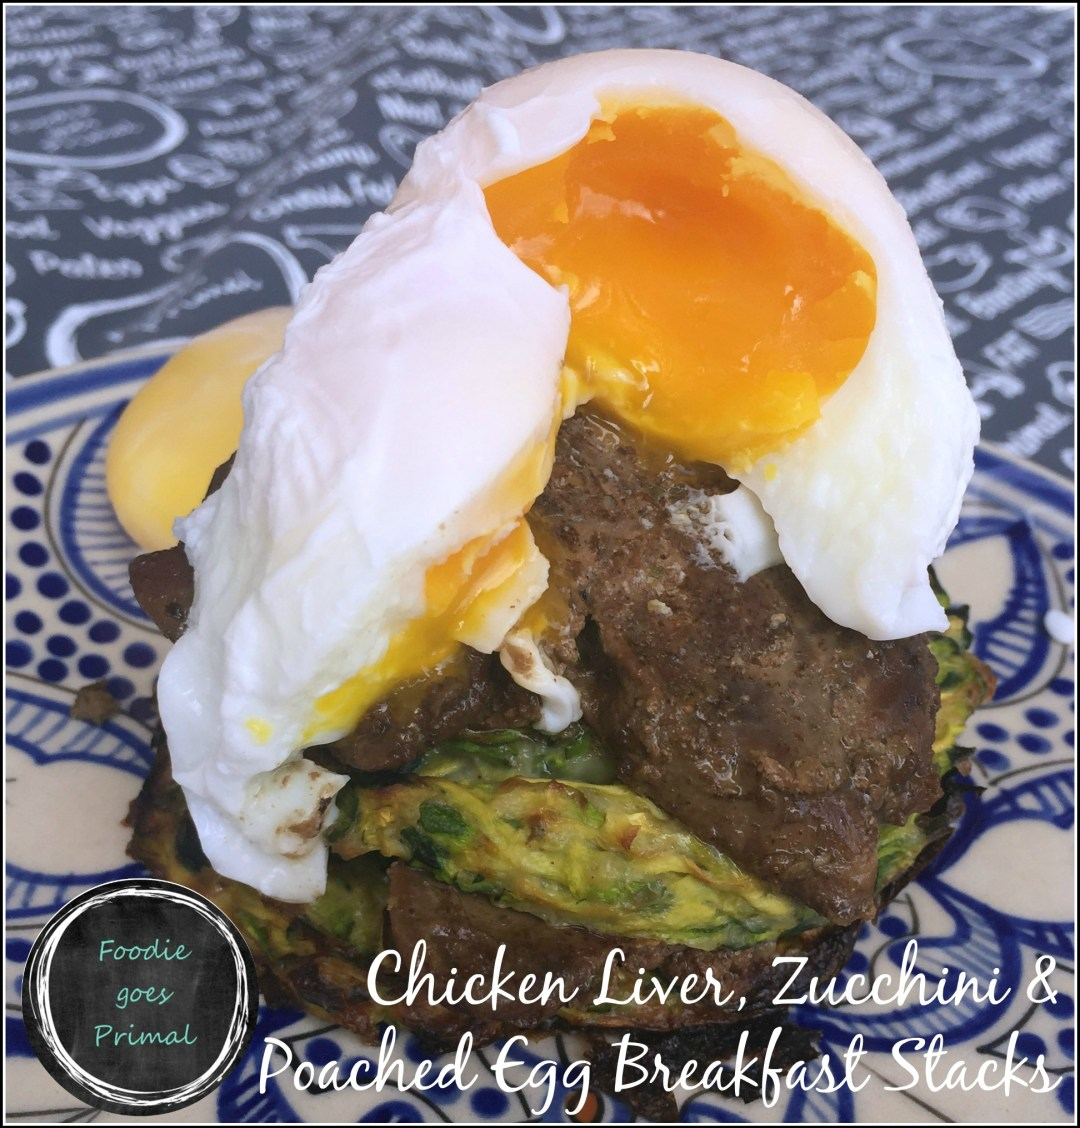 Chicken Liver, Zucchini & Poached Egg Breakfast Stacks {LCHF, Paleo, Dairy-Free}